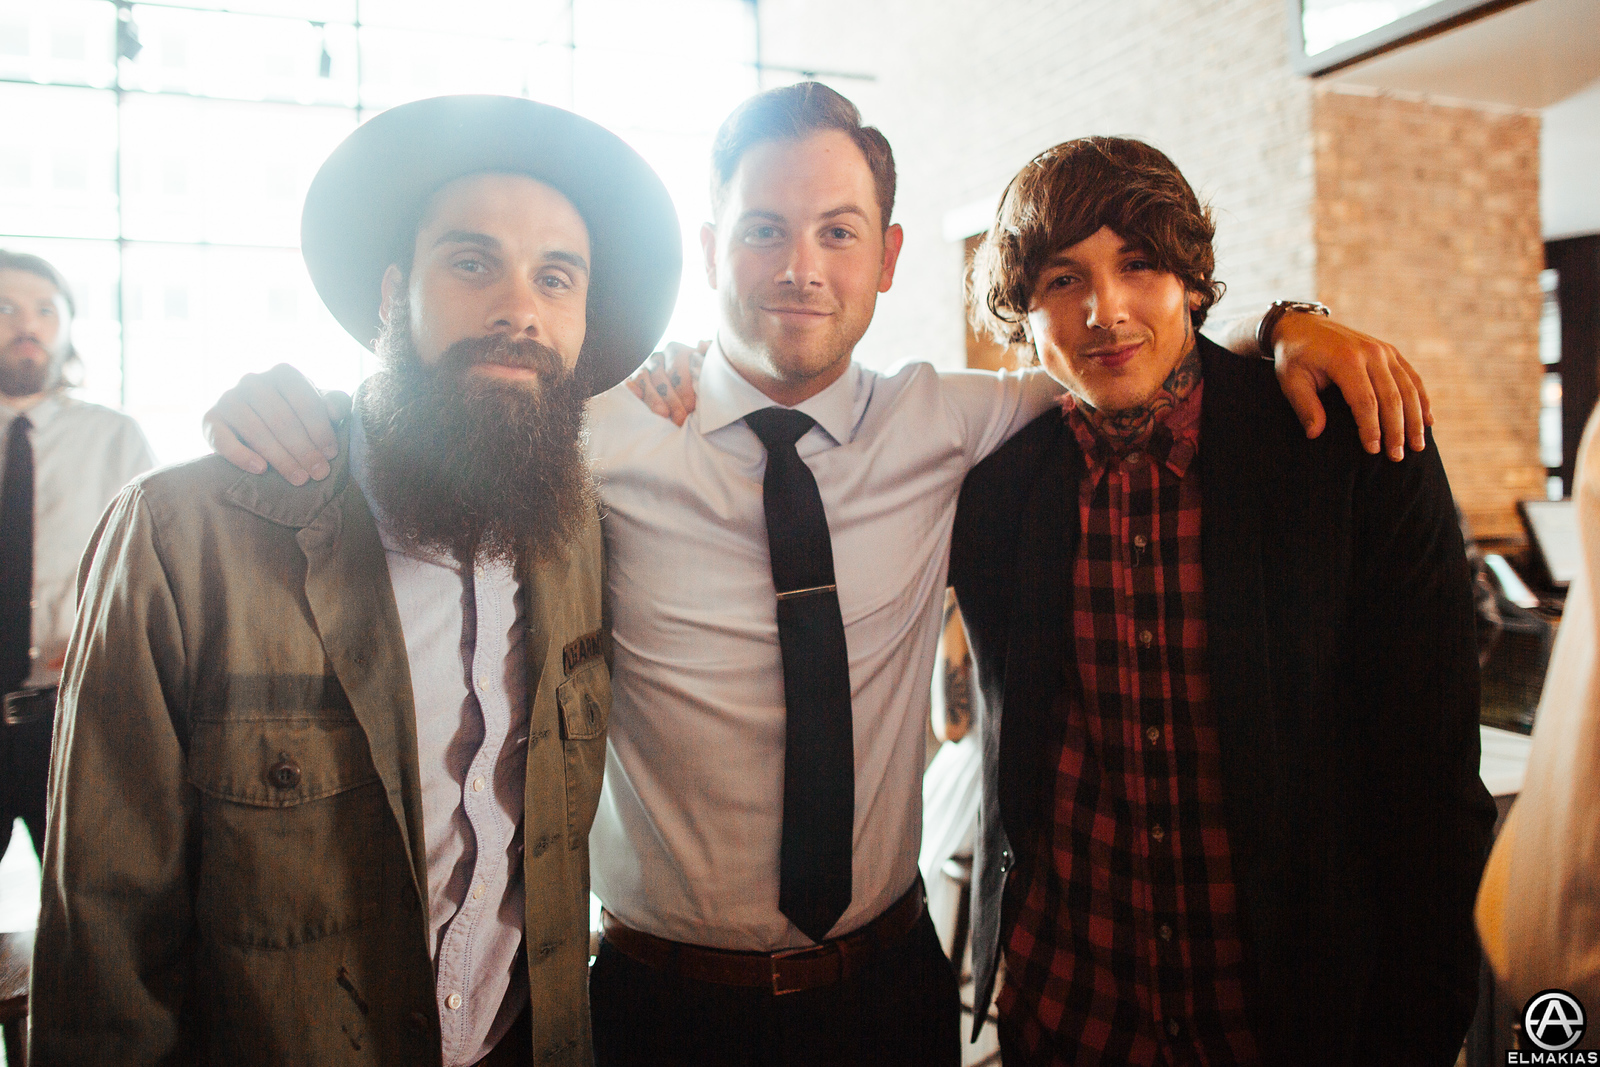 Jason of letlive., Kevin of A Day To Remember and Oli of Bring Me The Horizon